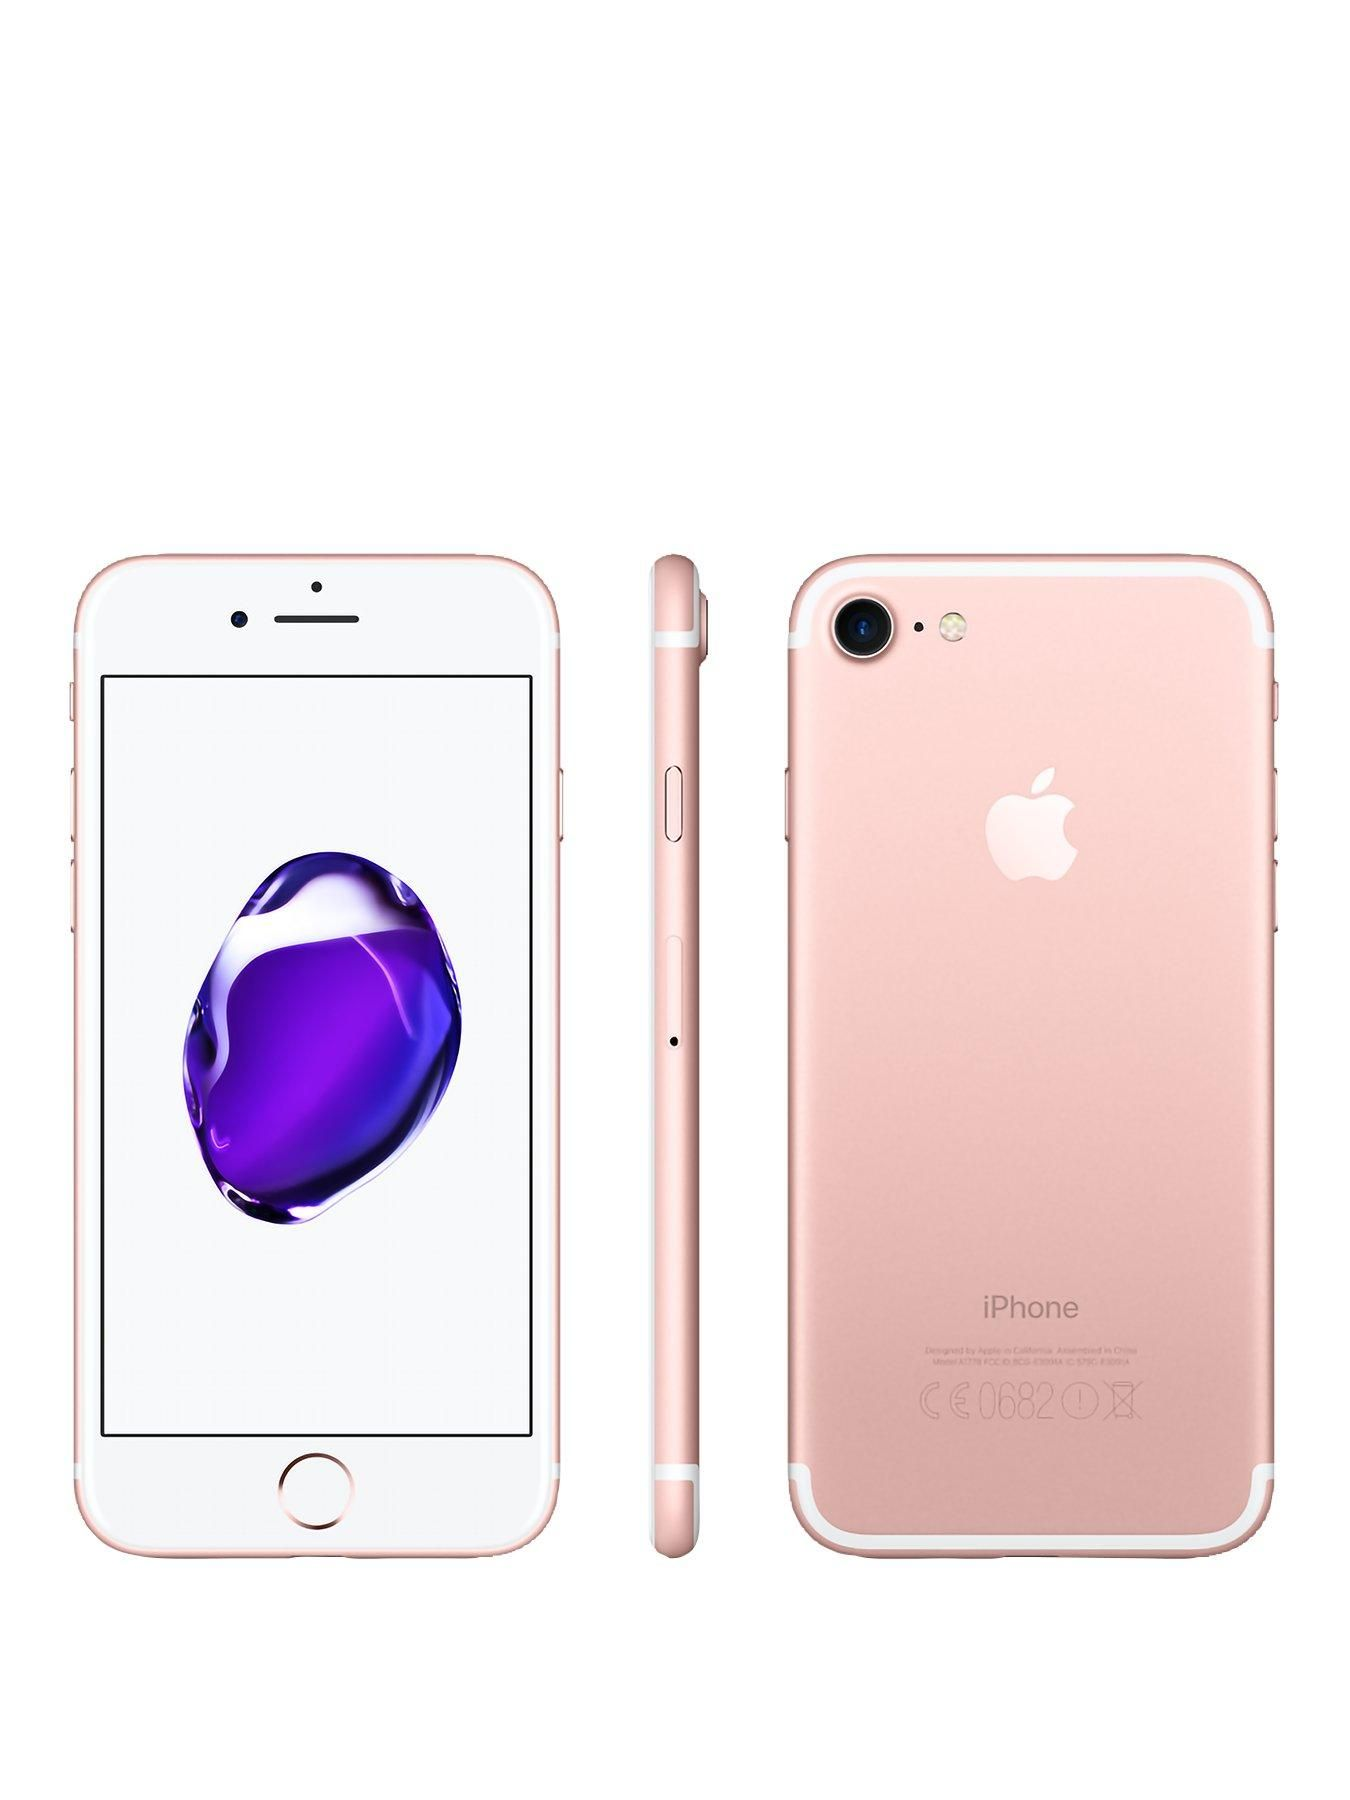 Apple Iphone 7 128gb Rose Gold Rose Gold In 2020 Iphone